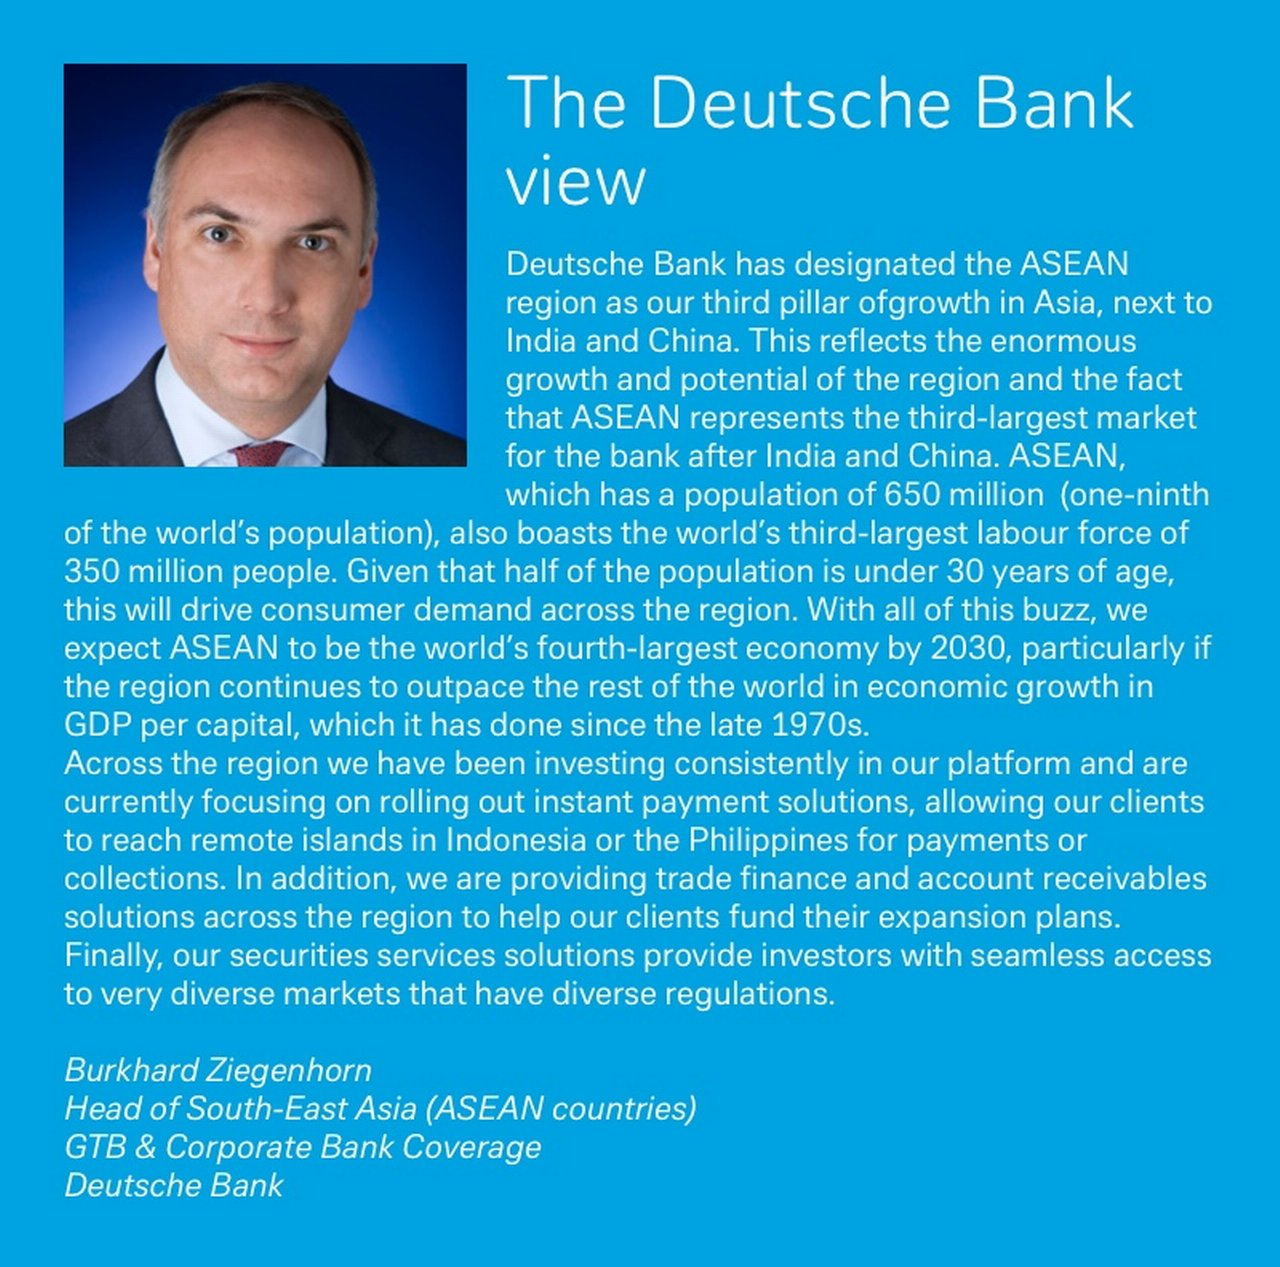 200615_The_Deutsche_Bank_view.jpg